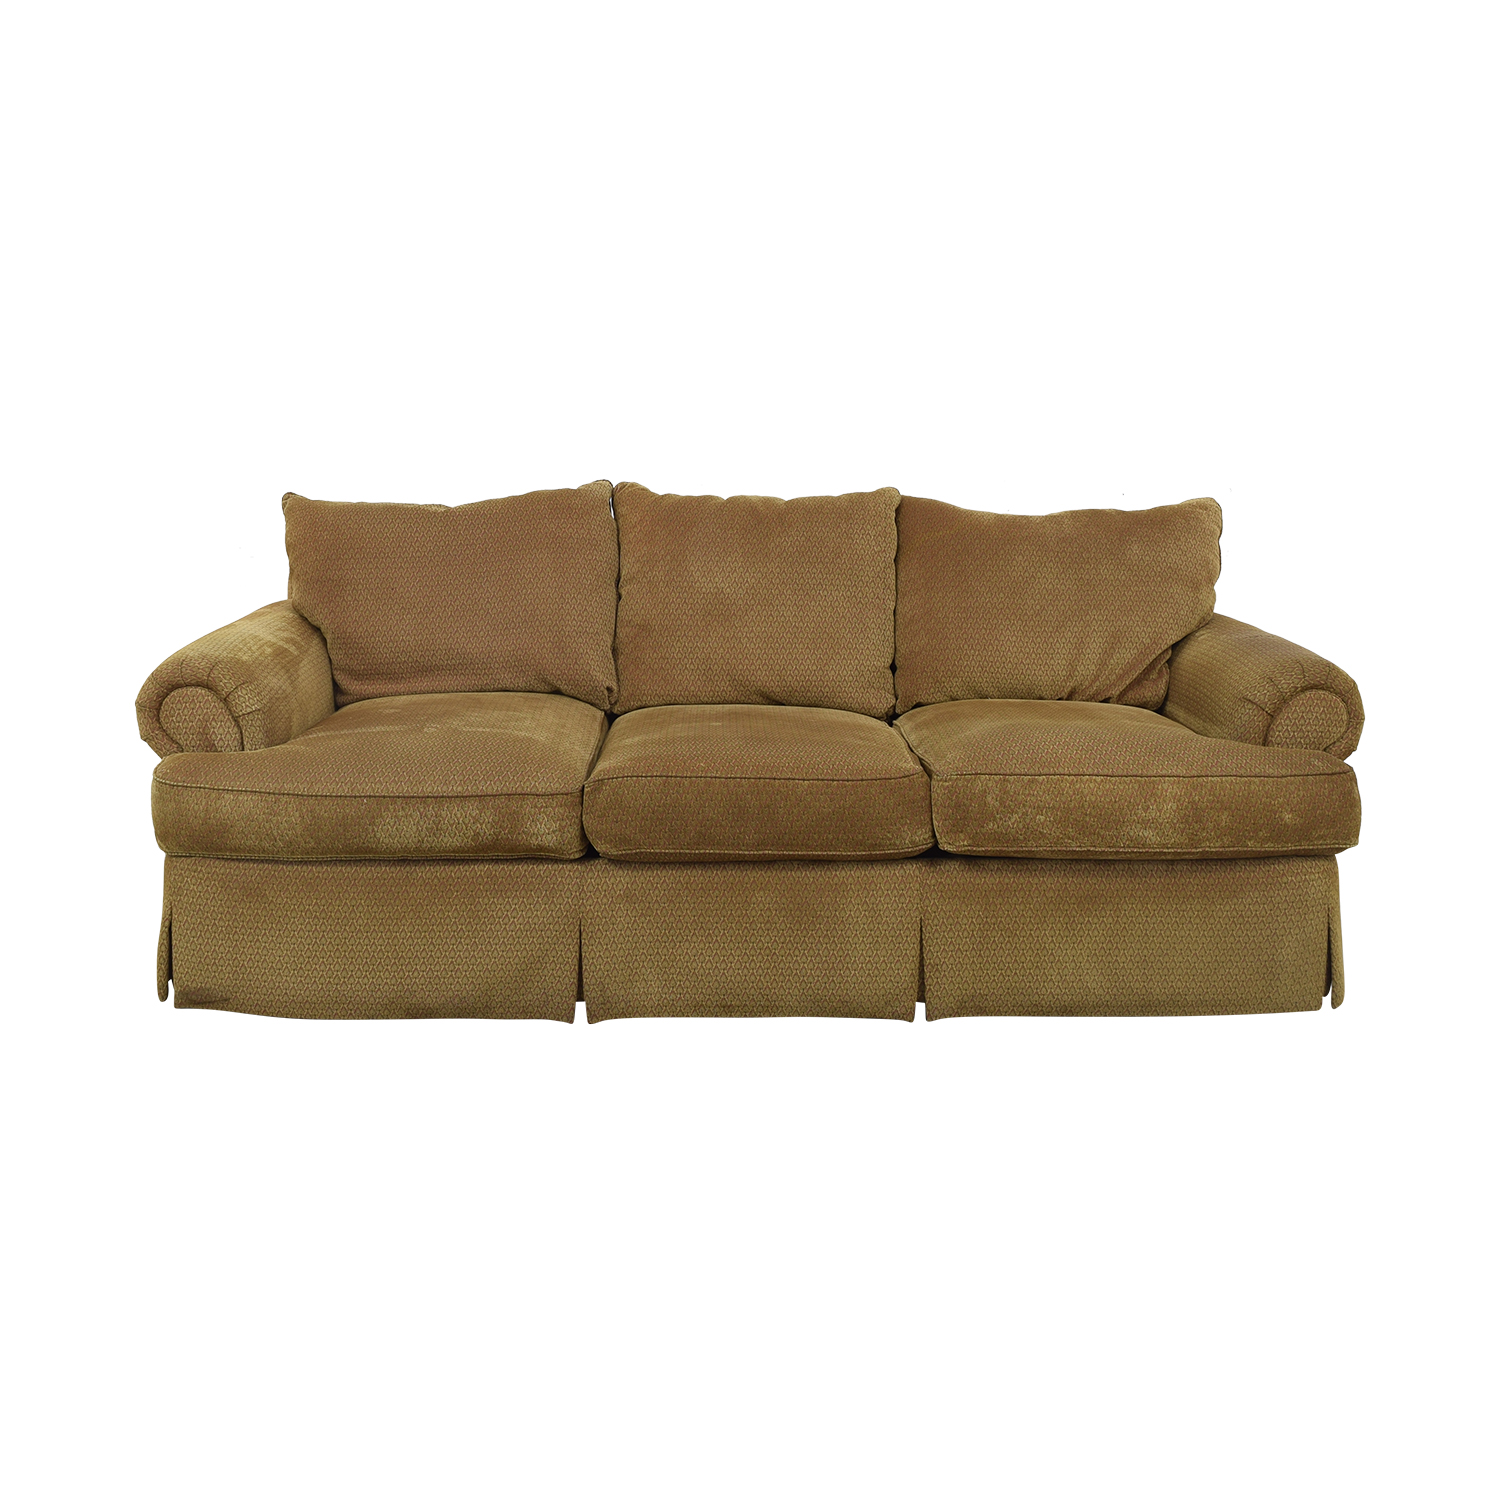 Thomasville Thomasville Three Seat Sofa with Ottoman Sofas